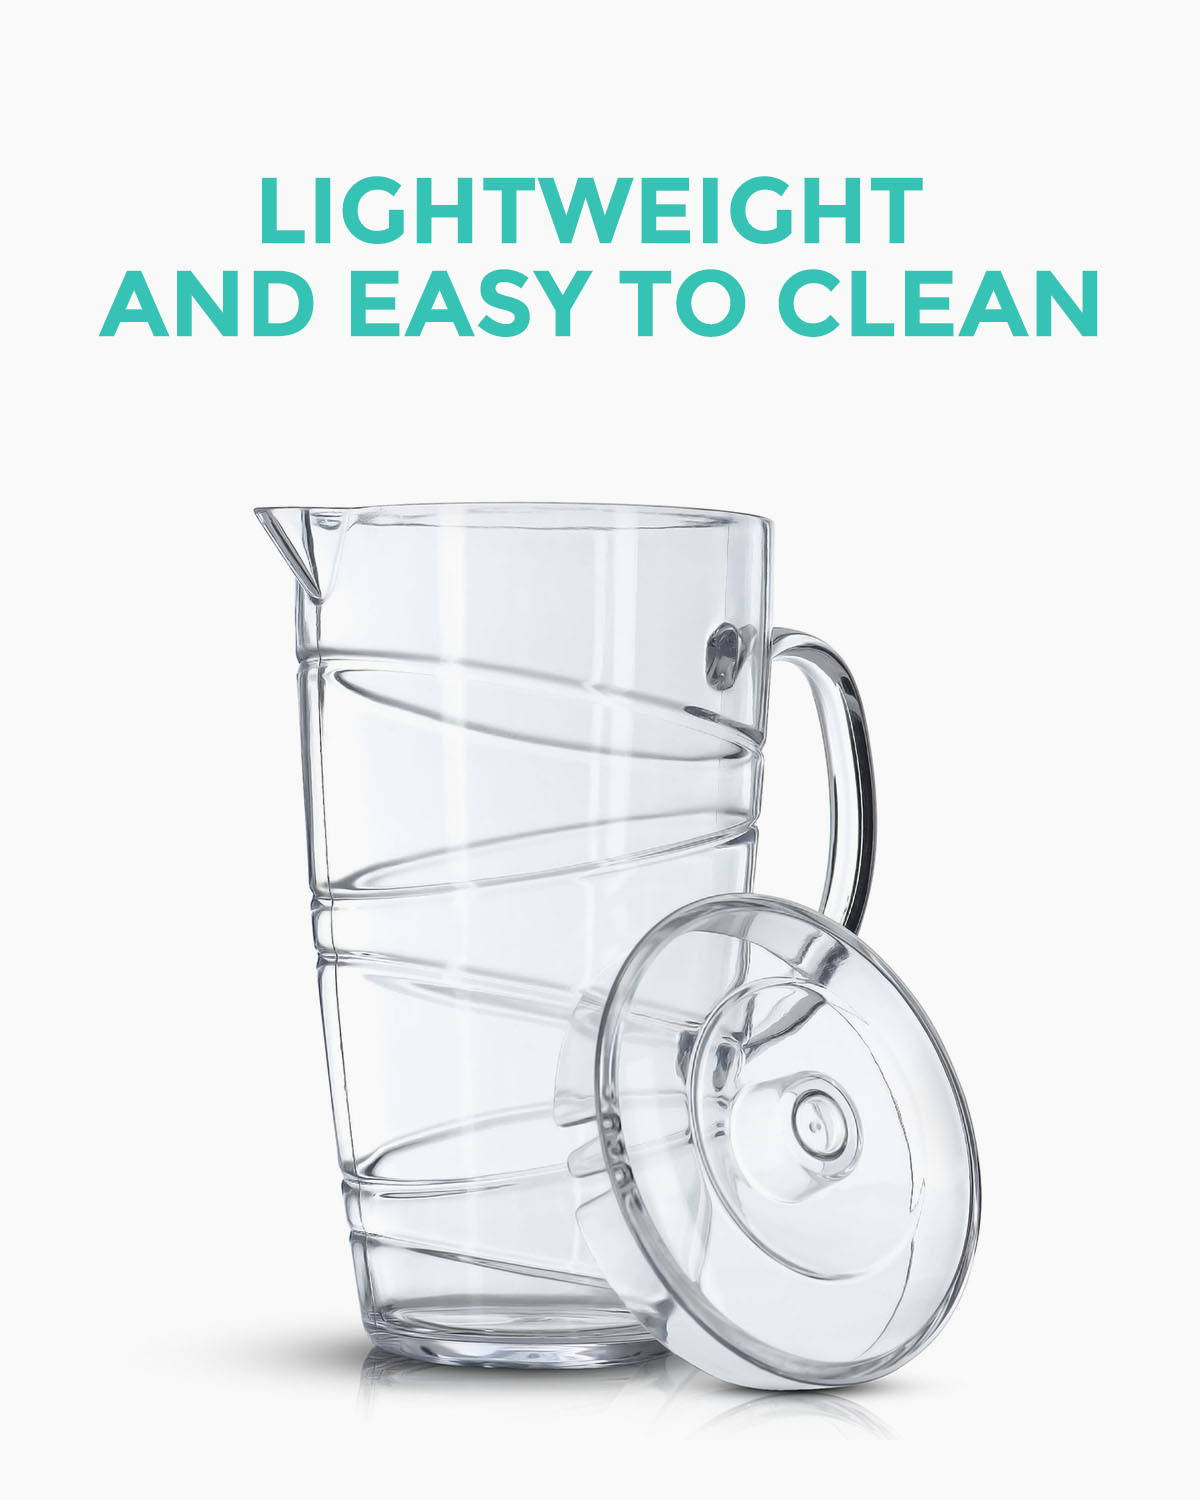 Lightweight and Easy to Clean